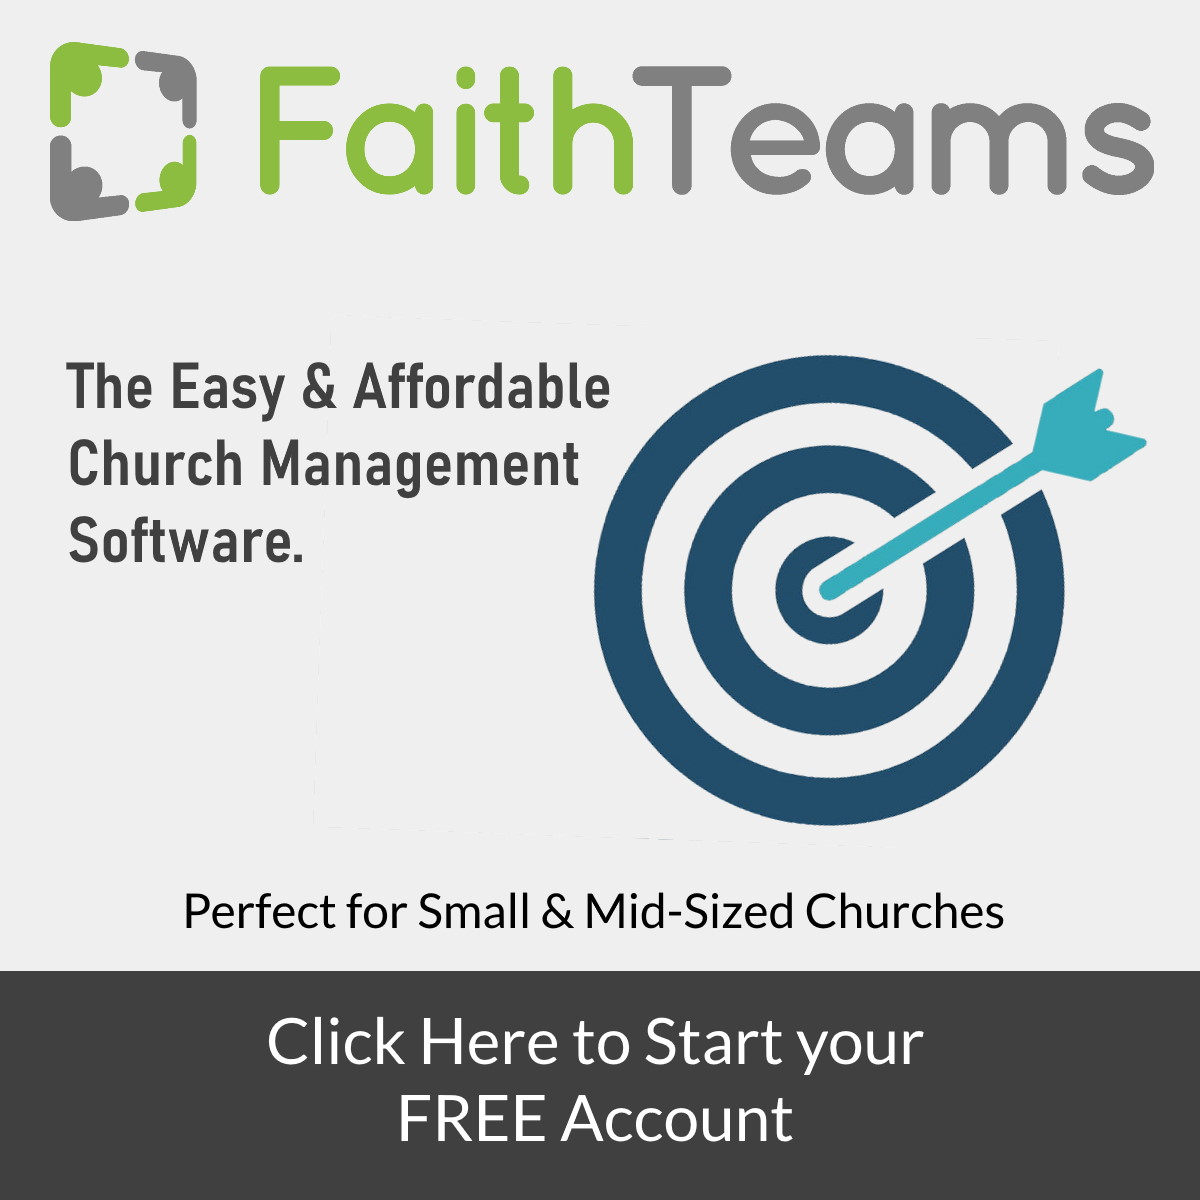 faithteams.com